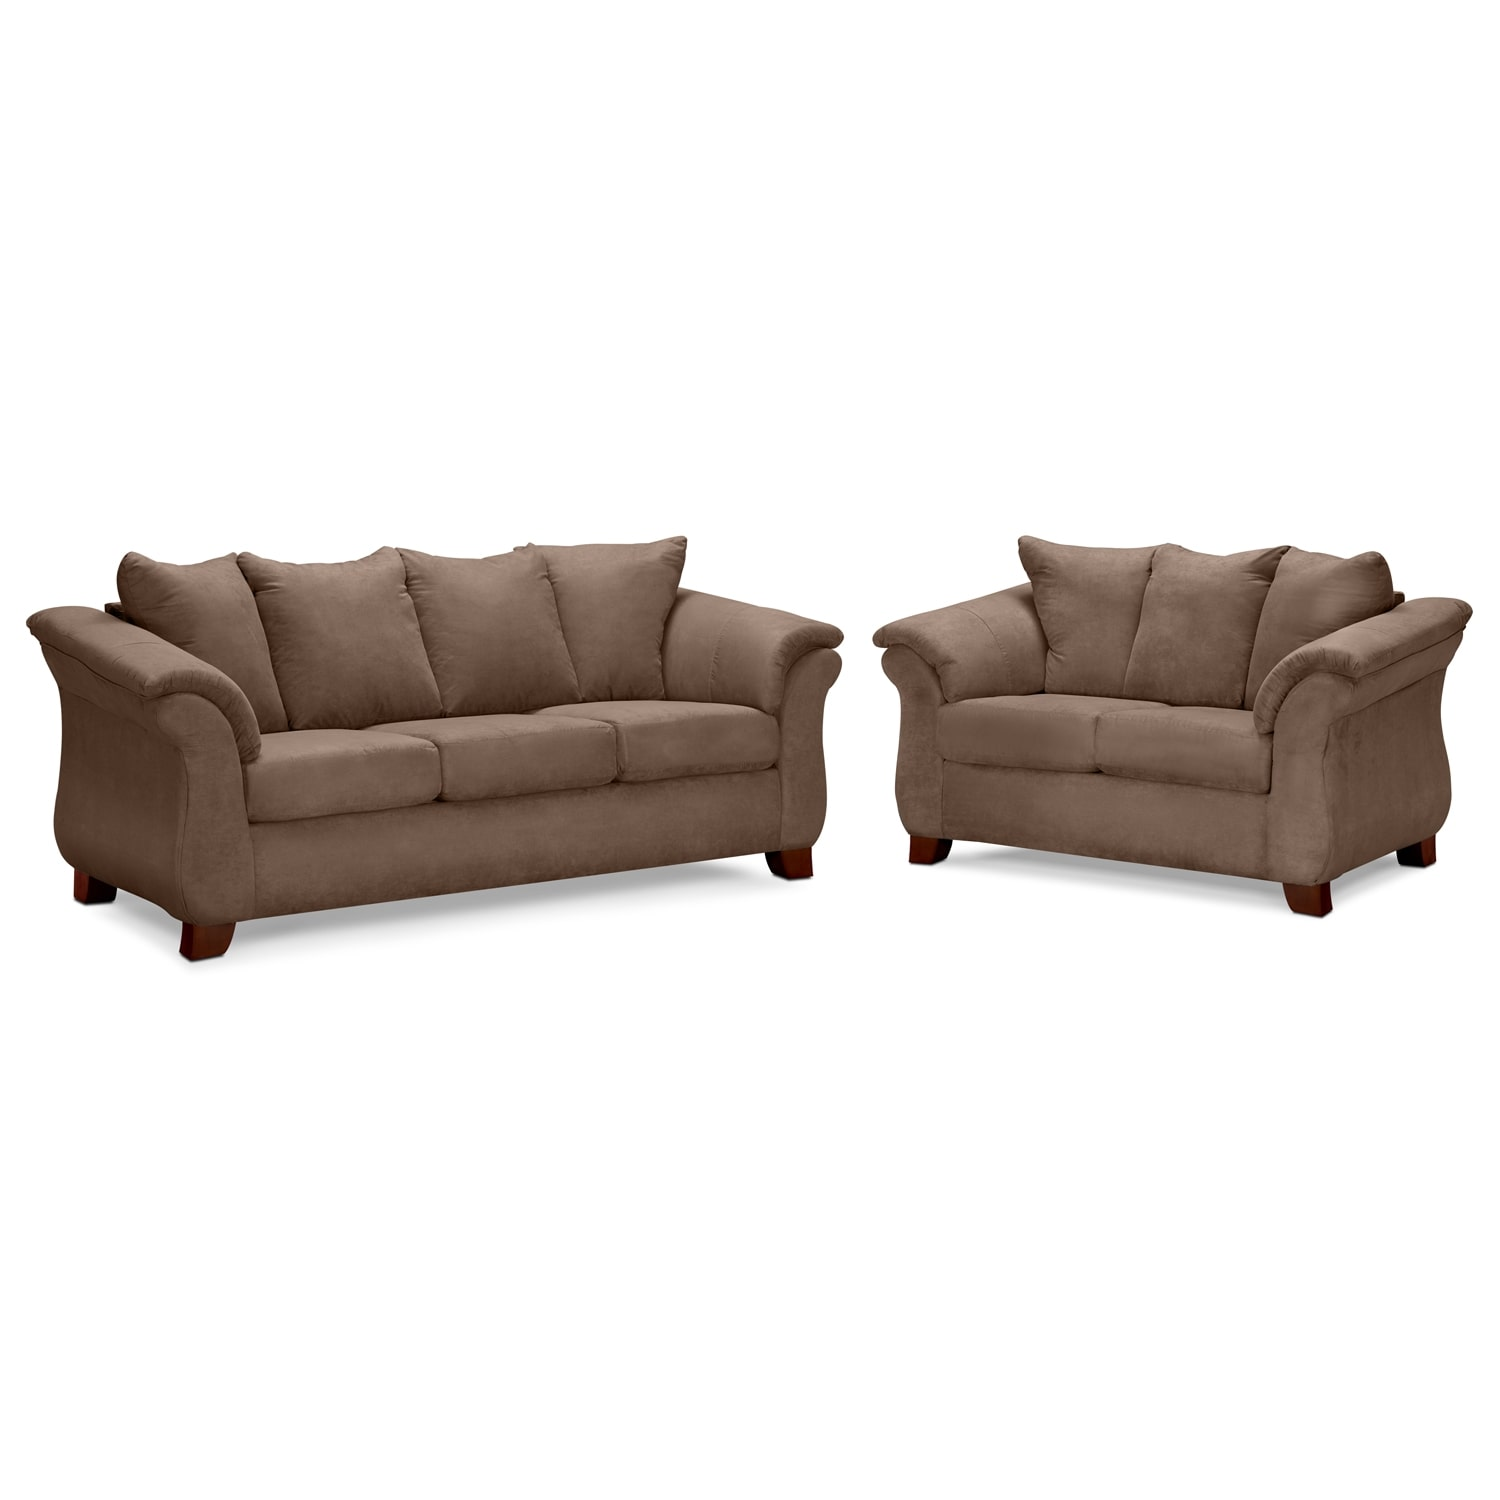 Adrian Sofa and Loveseat Set - Taupe